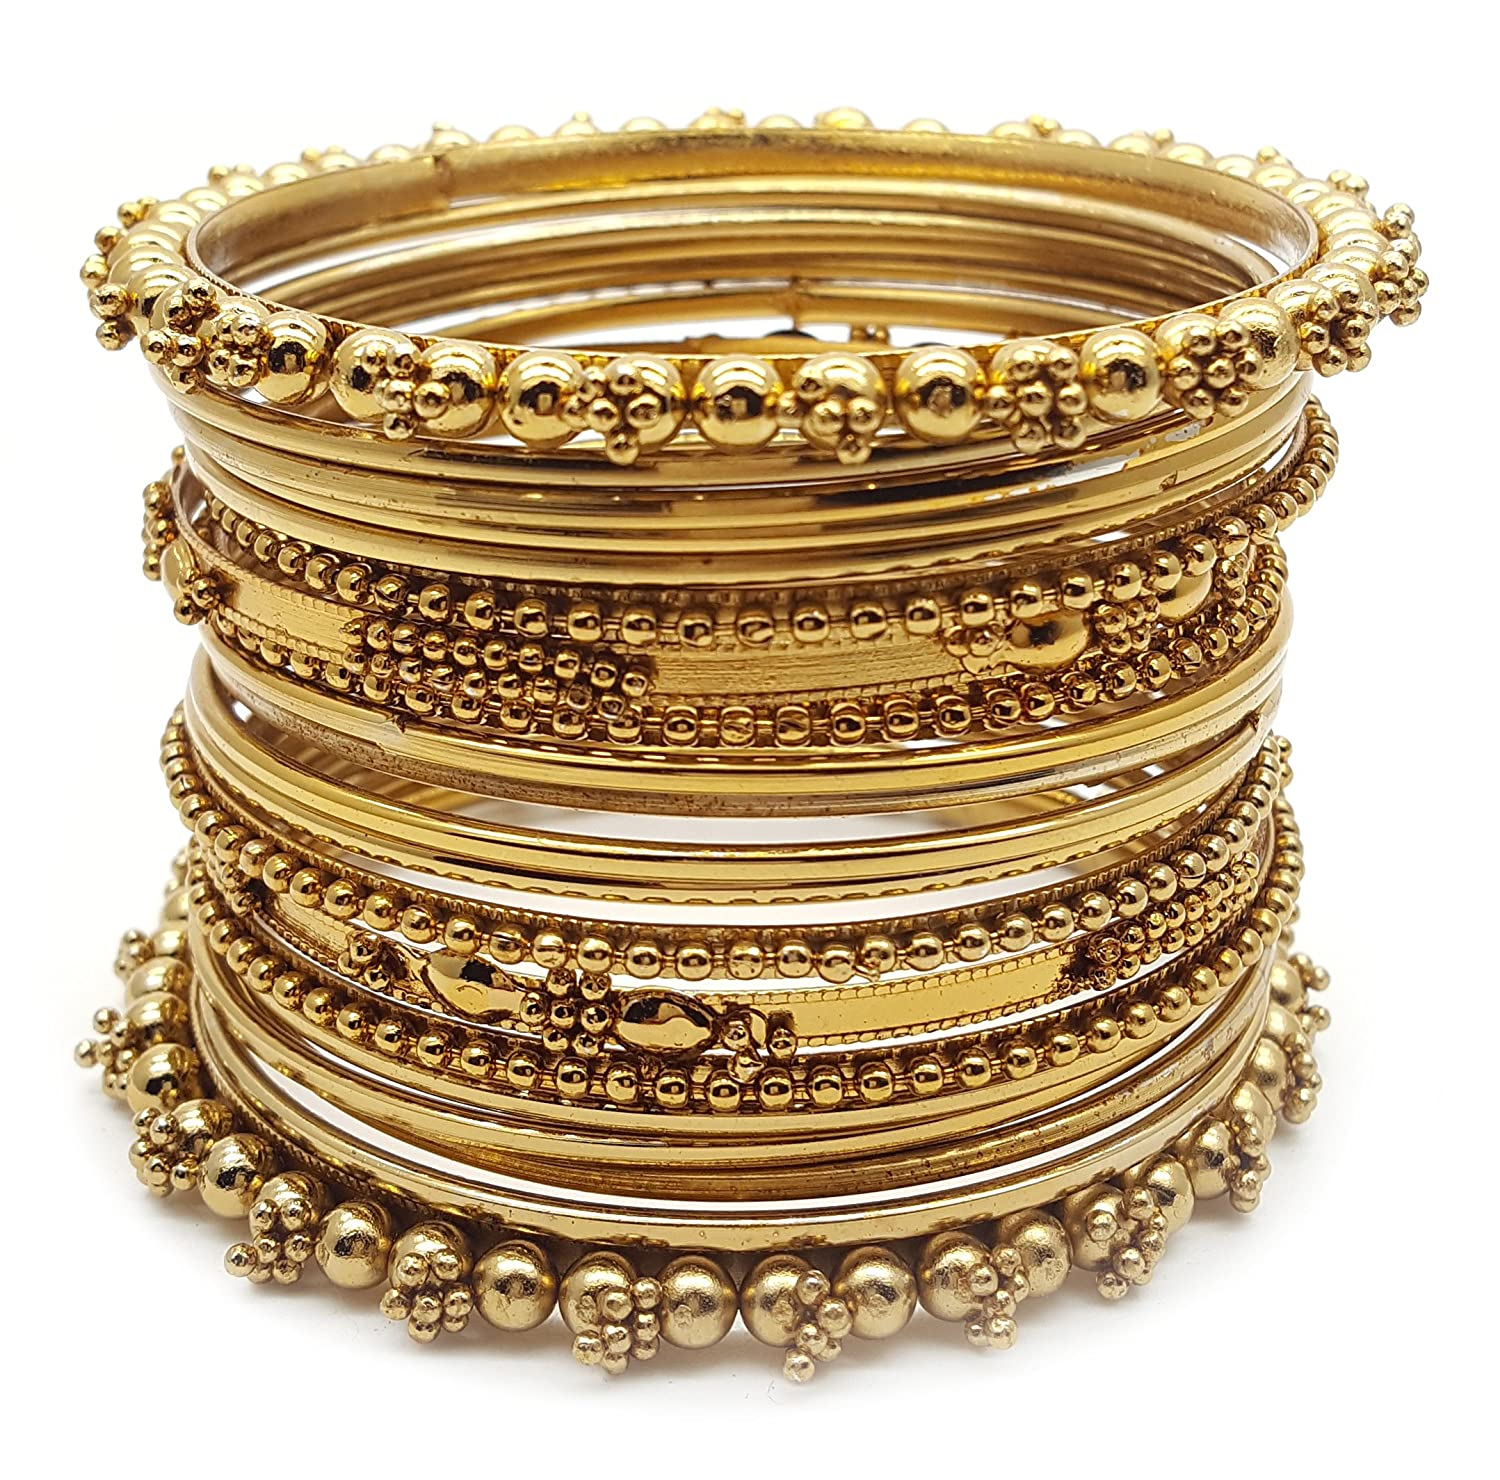 store gold bracelet bangle women crystal buy dp bangles studded amazon fashion in for india low at youbella online jewellery and prices plated girls